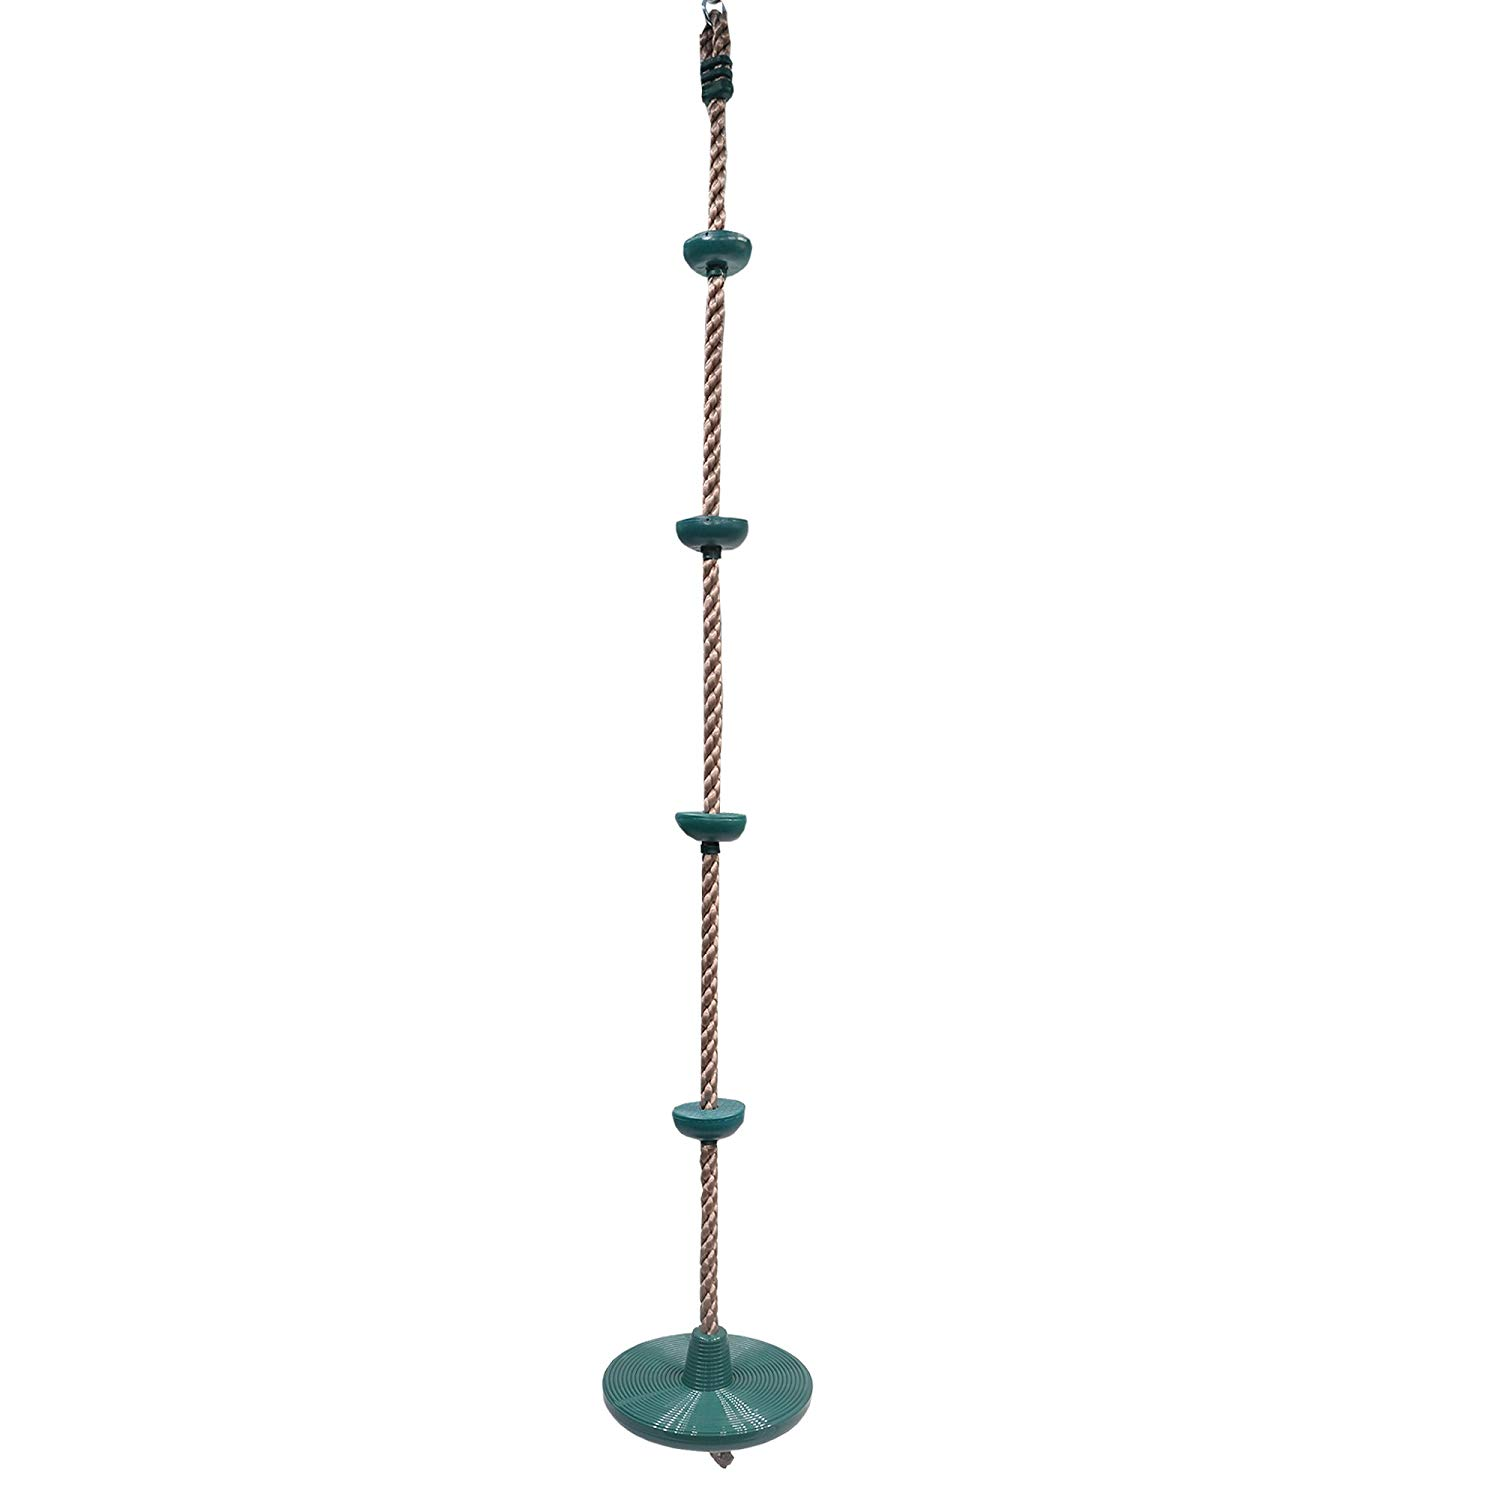 Barcaloo Climbing Rope with Disc Swing Seat - Playground Equipment Set